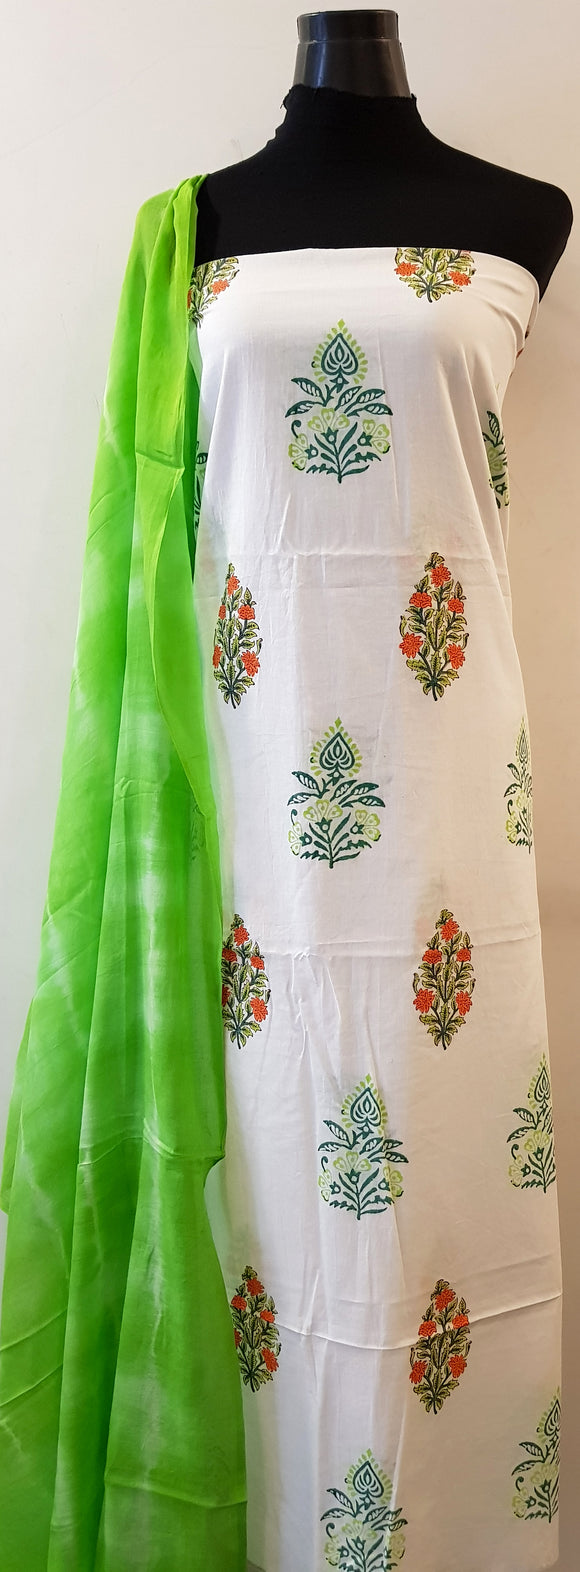 Handblock Green-Orange Kurta Material + Green Dupatta (FL-VL)